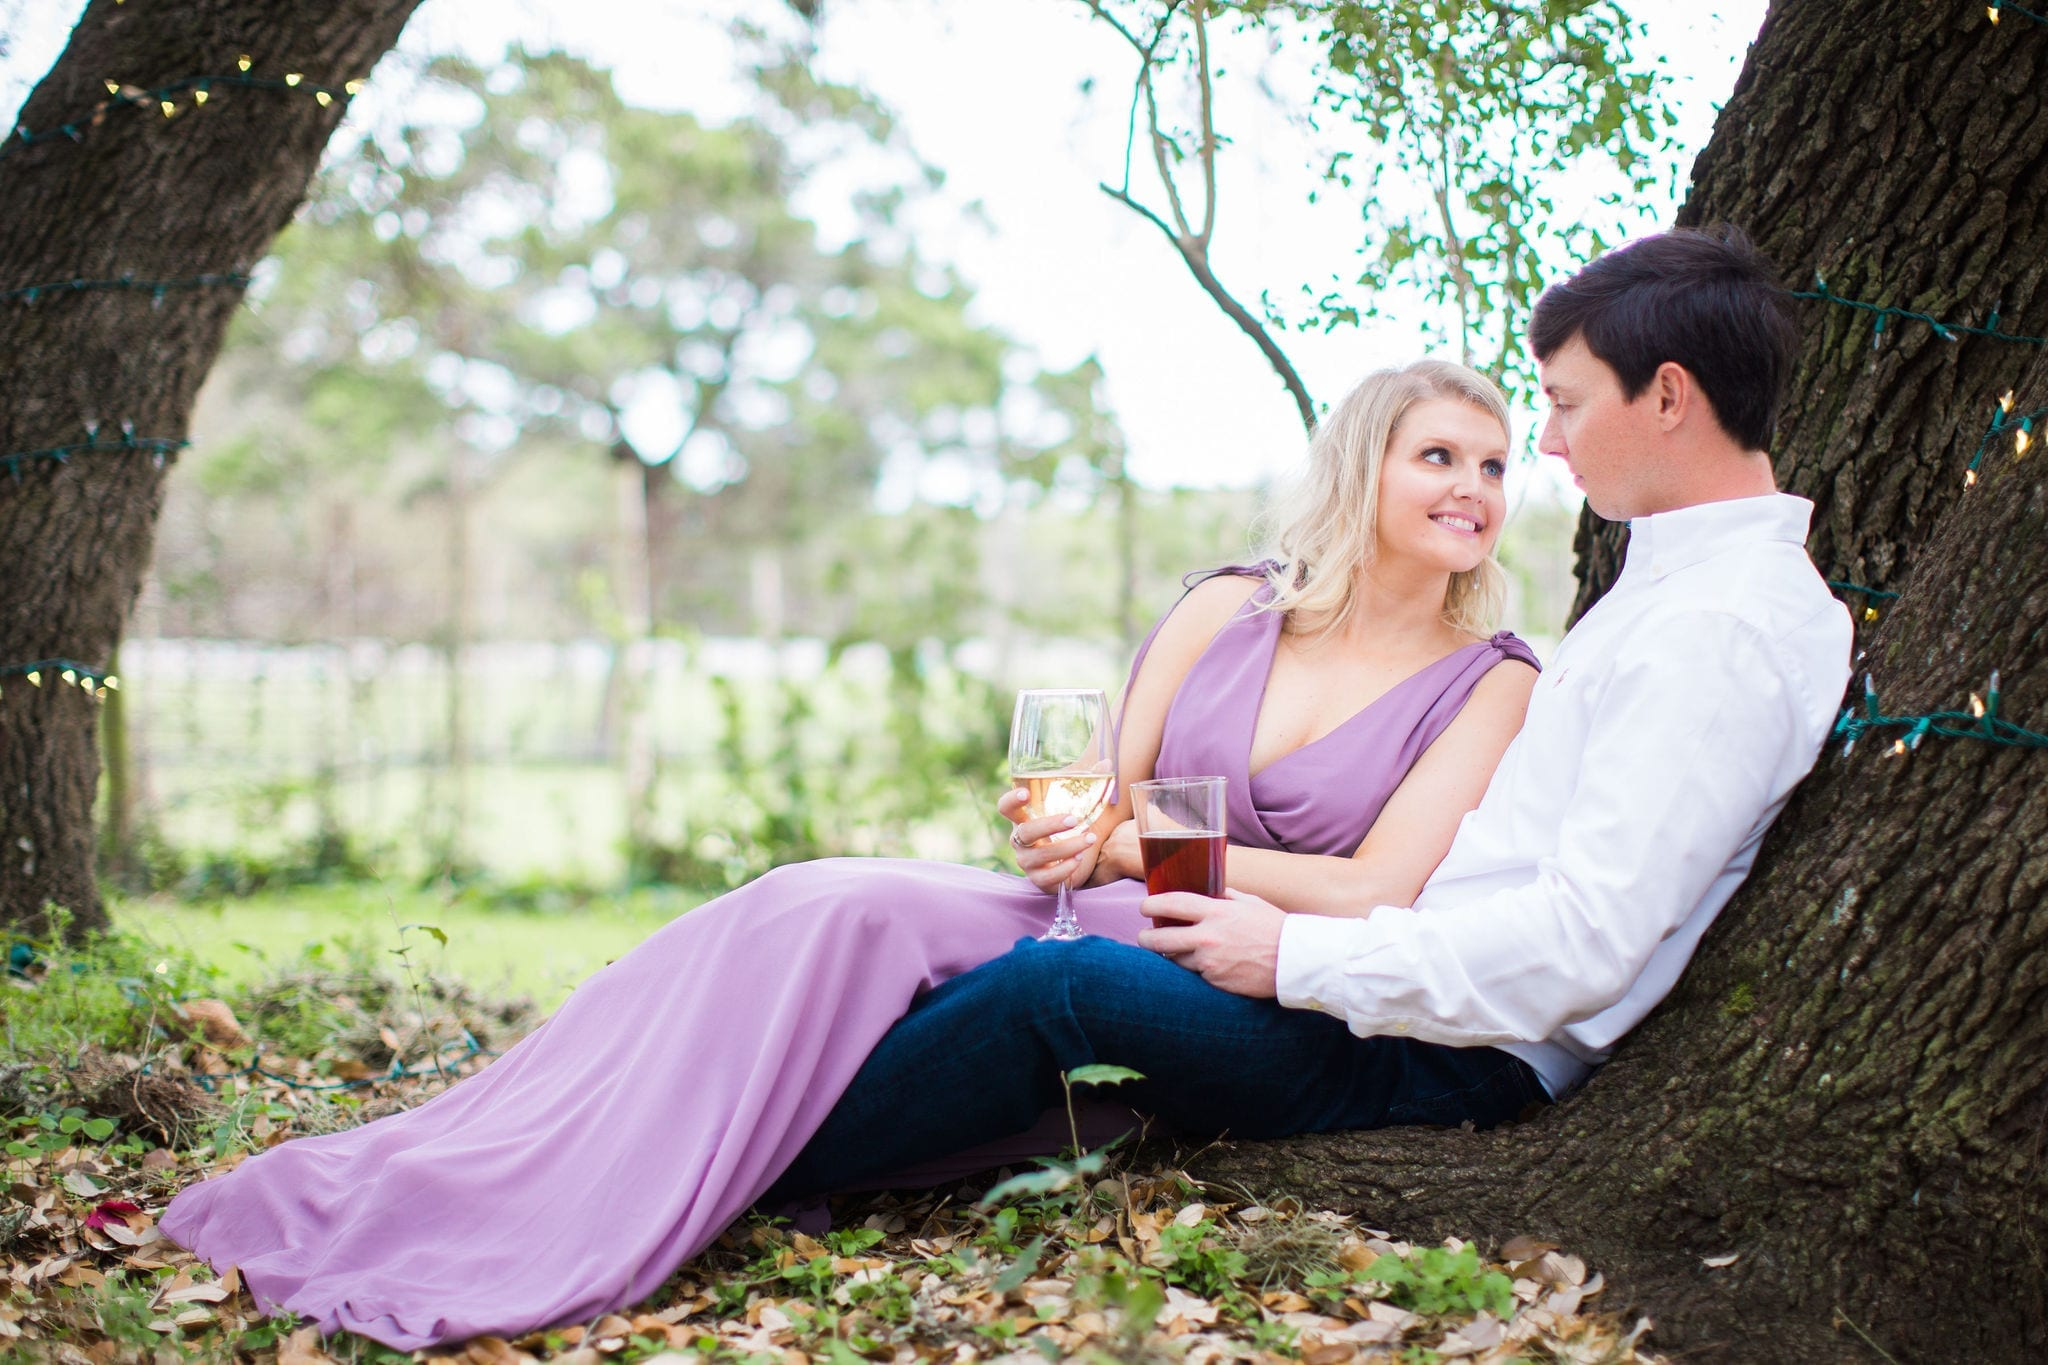 Michele Engagement session at Oak Valley Vineyards sitting in trees drinking wine